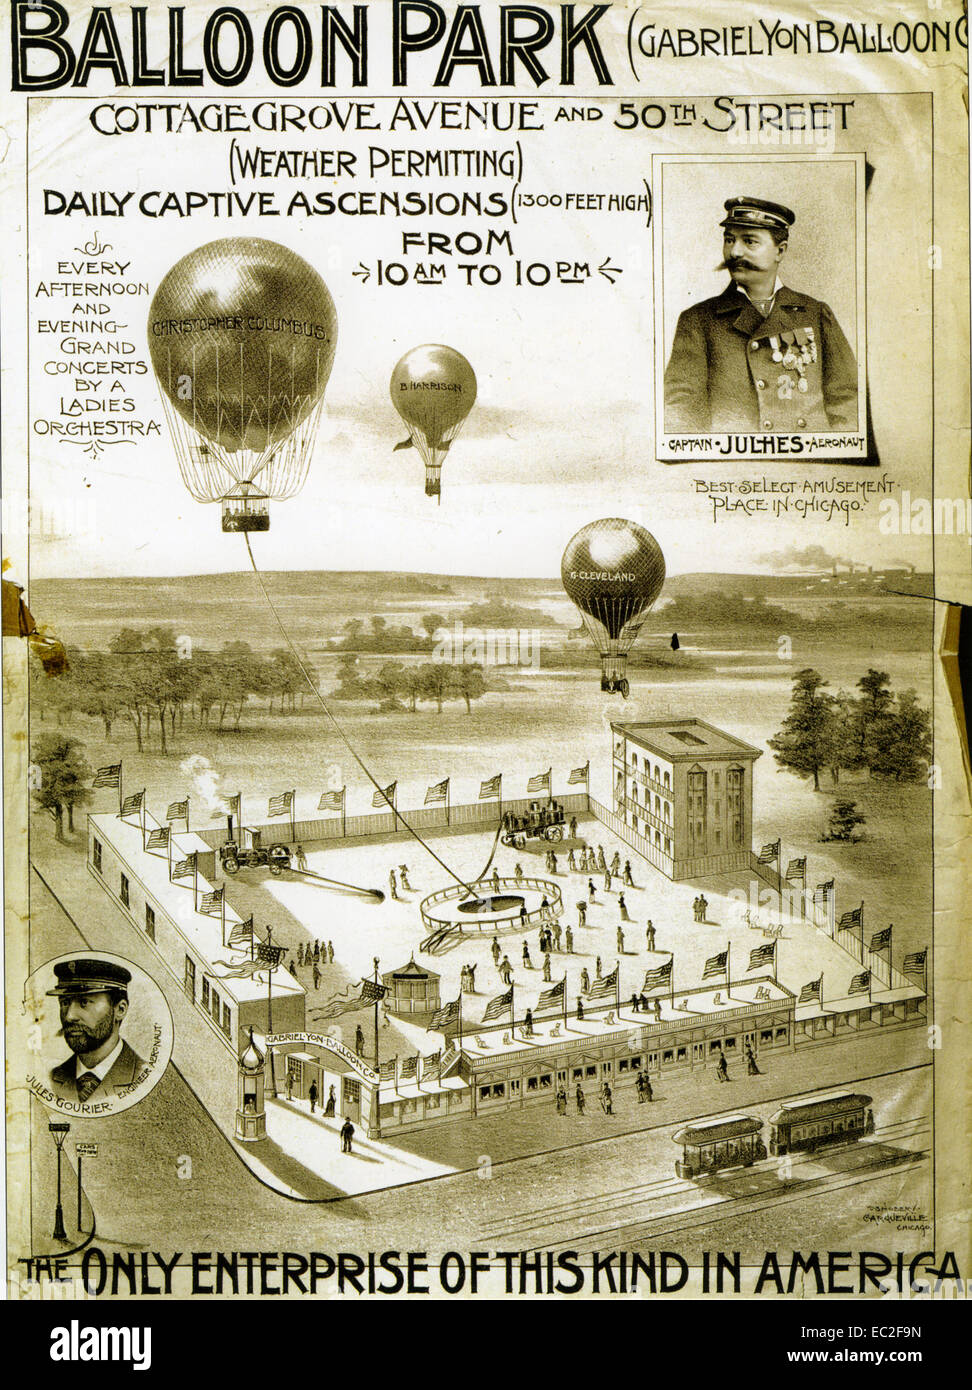 BALLOON PARK at corner of Cottage Grove and 50th Street, Chicago. 1883 - Stock Image